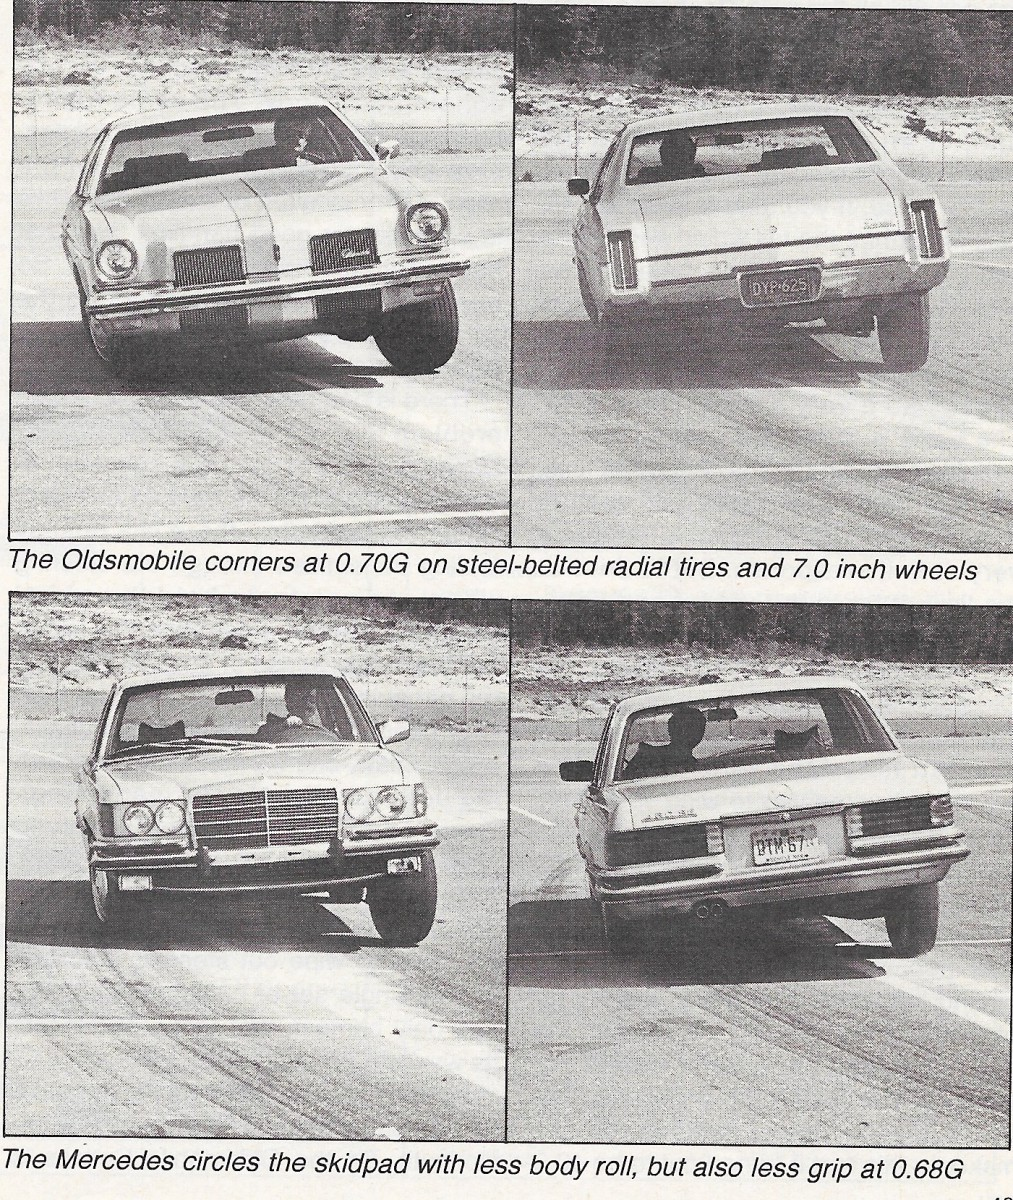 Vintage review 1973 oldsmobile cutlass salon versus 1973 mercedes 450se no joke car and driver compares a colonnade to an s class